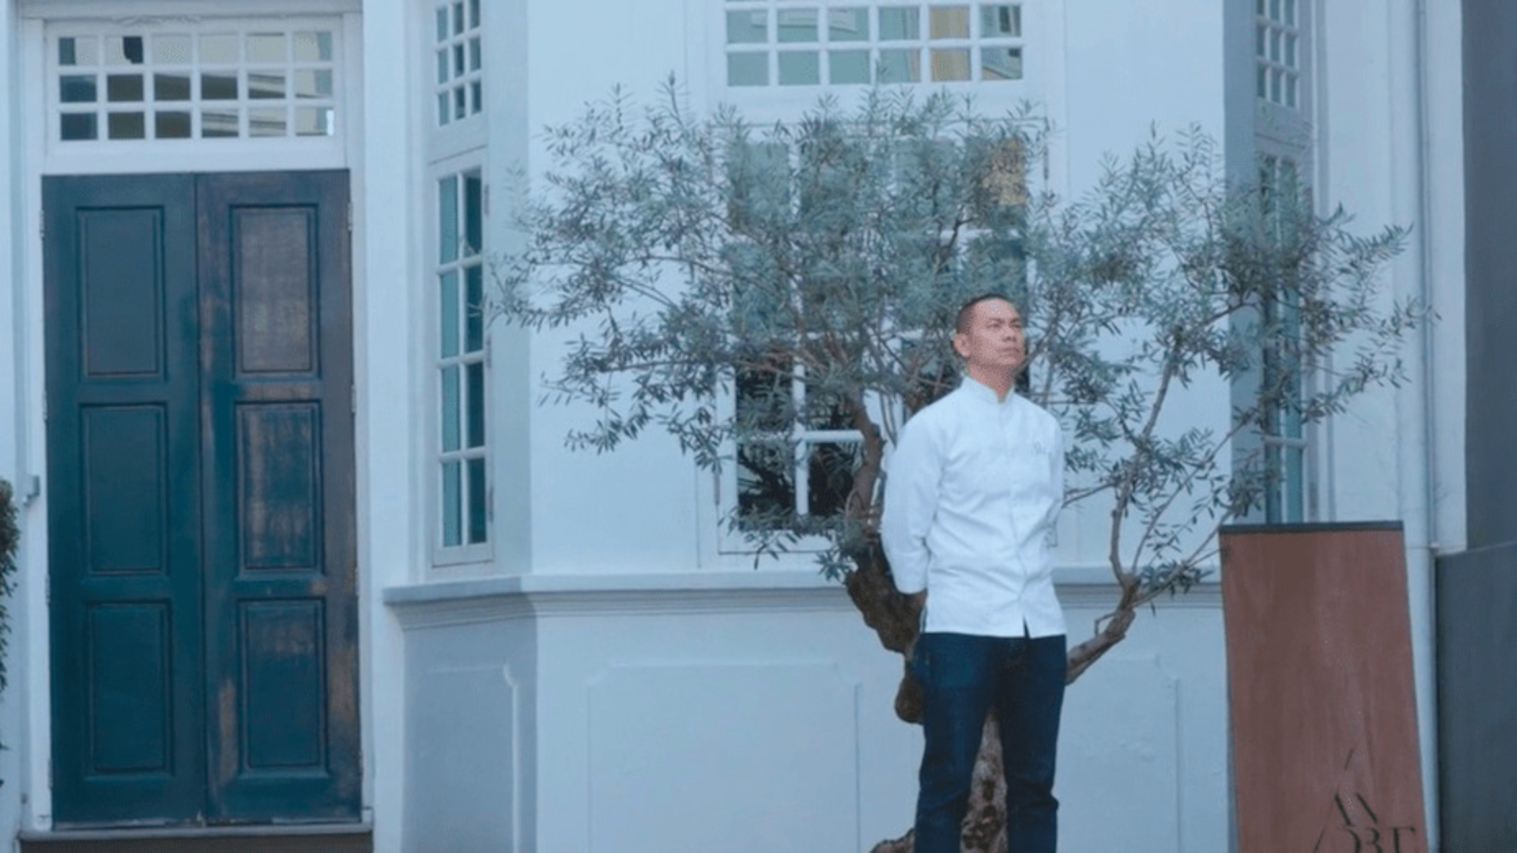 Film Review: What Andre And His Olive Tree Teaches Us About Quitting At Your Peak